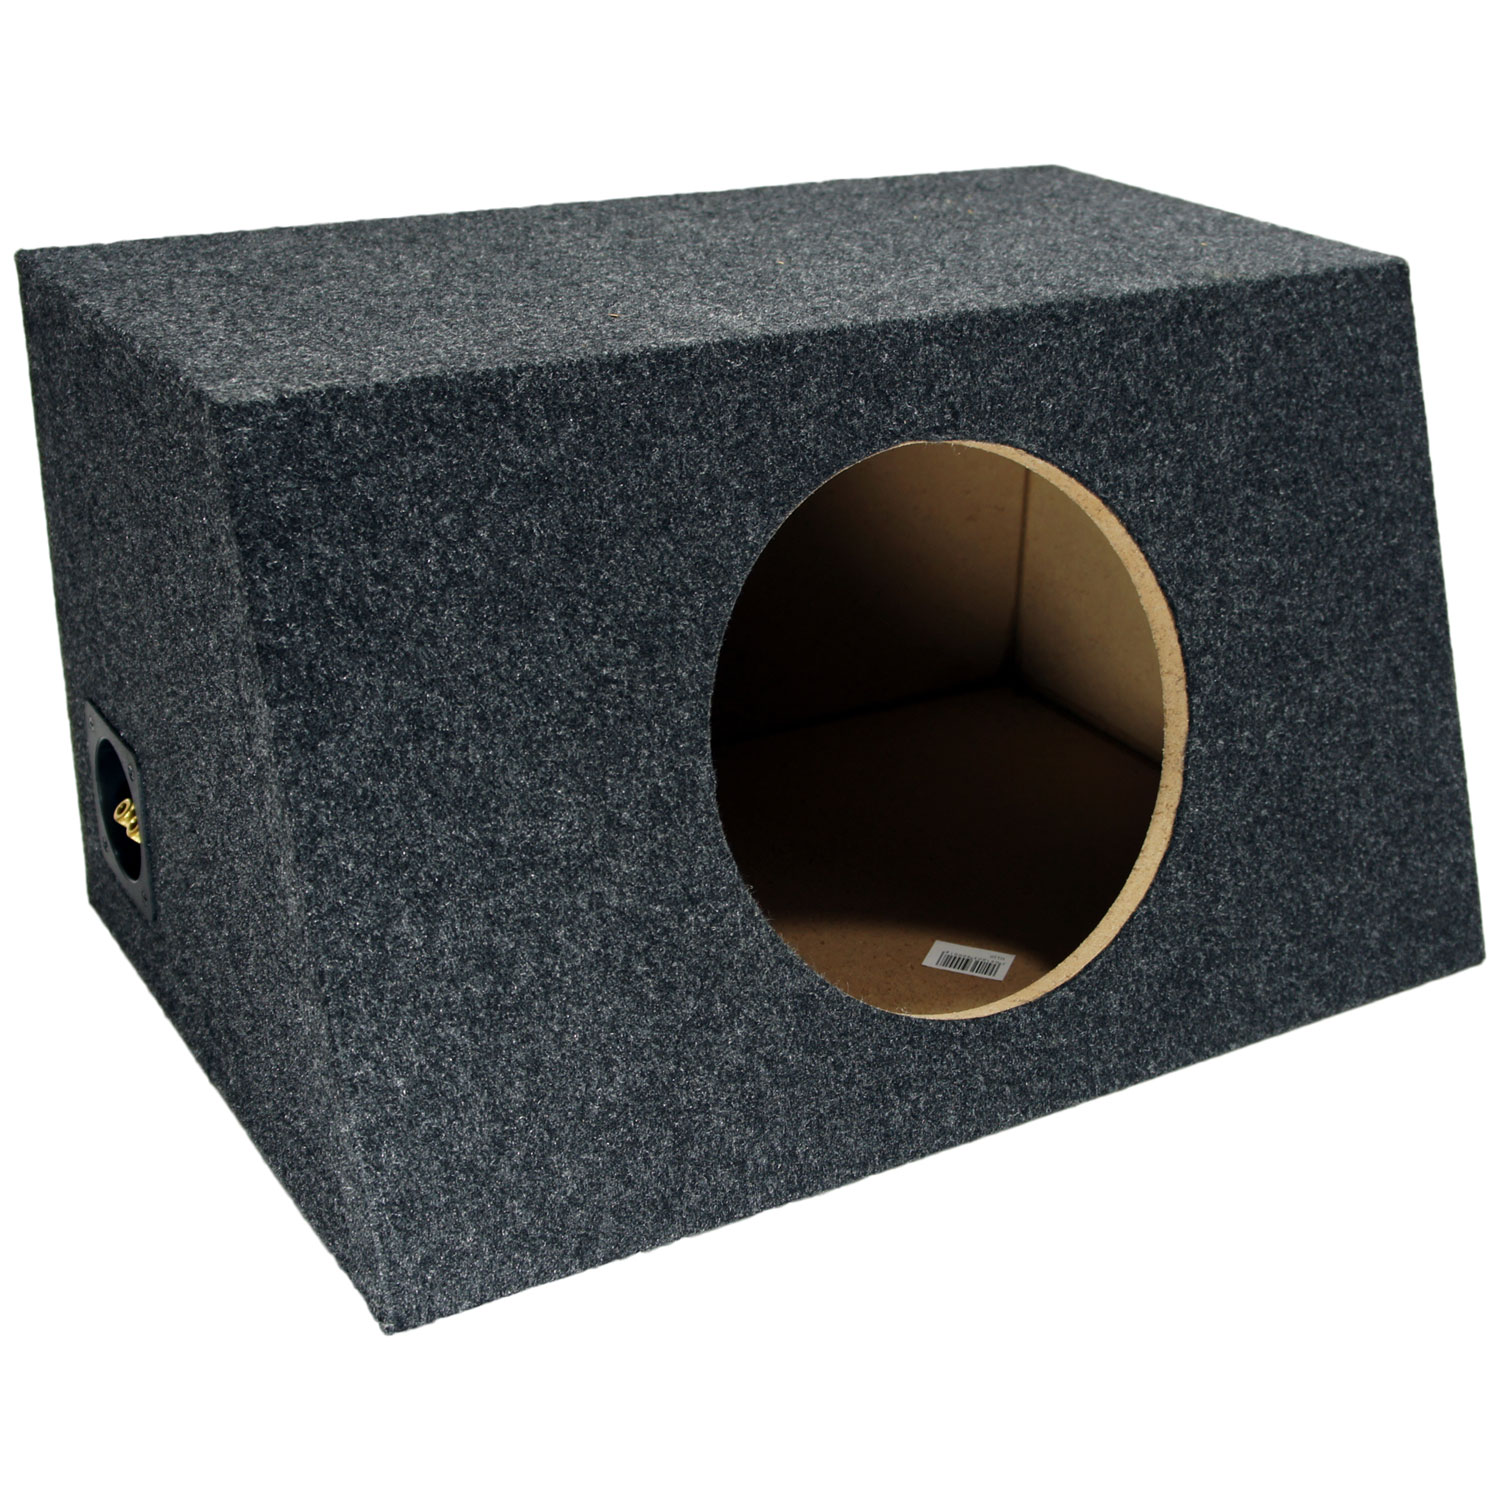 "Sub Boxes Hatchback Single 10"" Subwoofer Unloaded Enclosure Box"